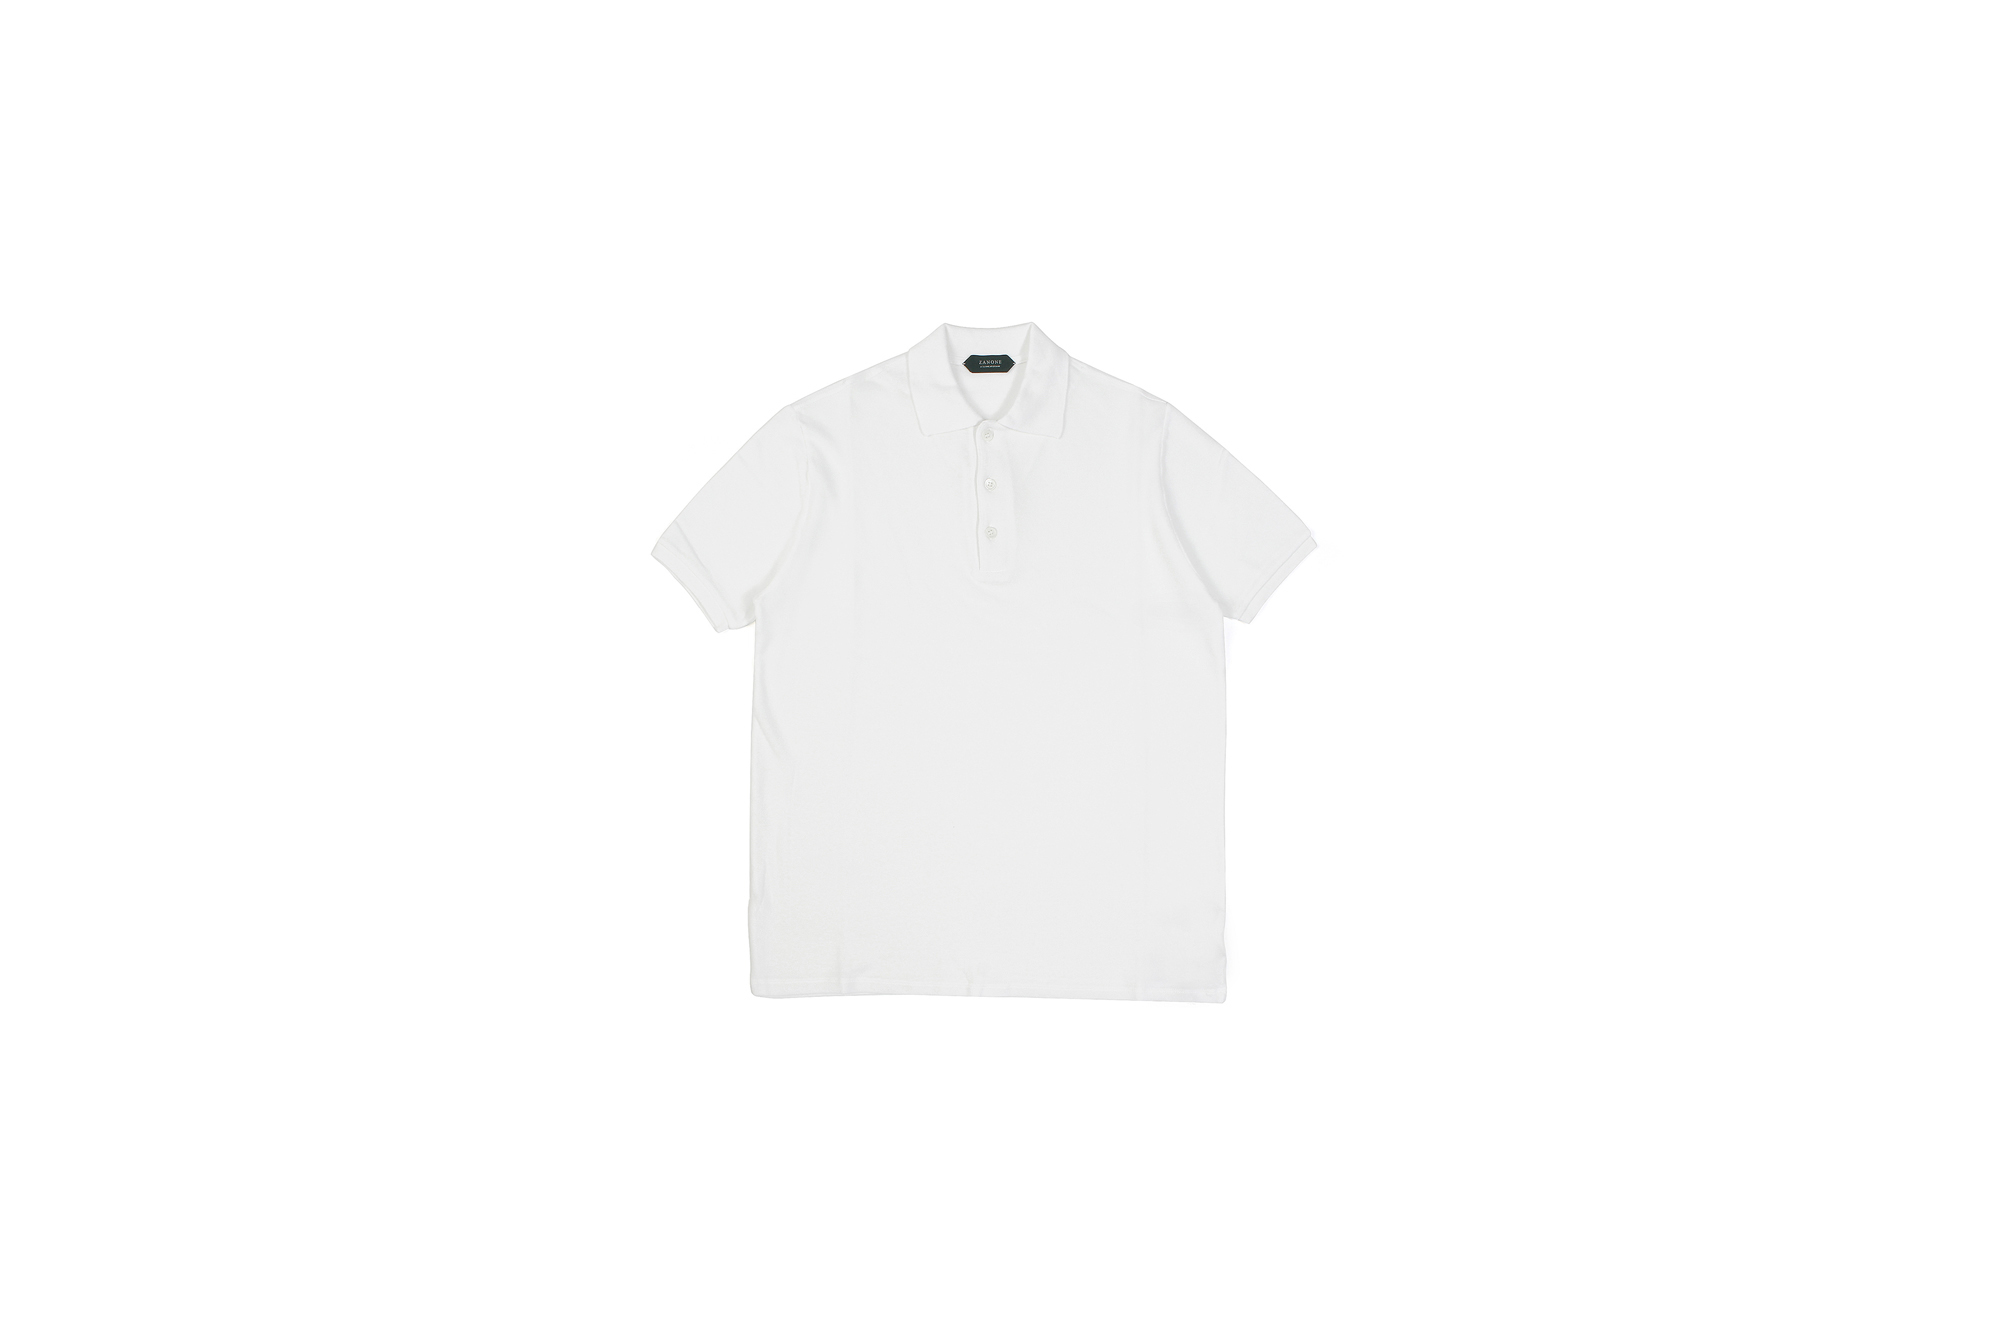 ZANONE(ザノーネ) Pique Polo Shirt ice cotton アイスコットン ピケポロシャツ WHITE (ホワイト・Z0001) made in italy (イタリア製) 2020 春夏新作 愛知 名古屋 altoediritto アルトエデリット ポロシャツ